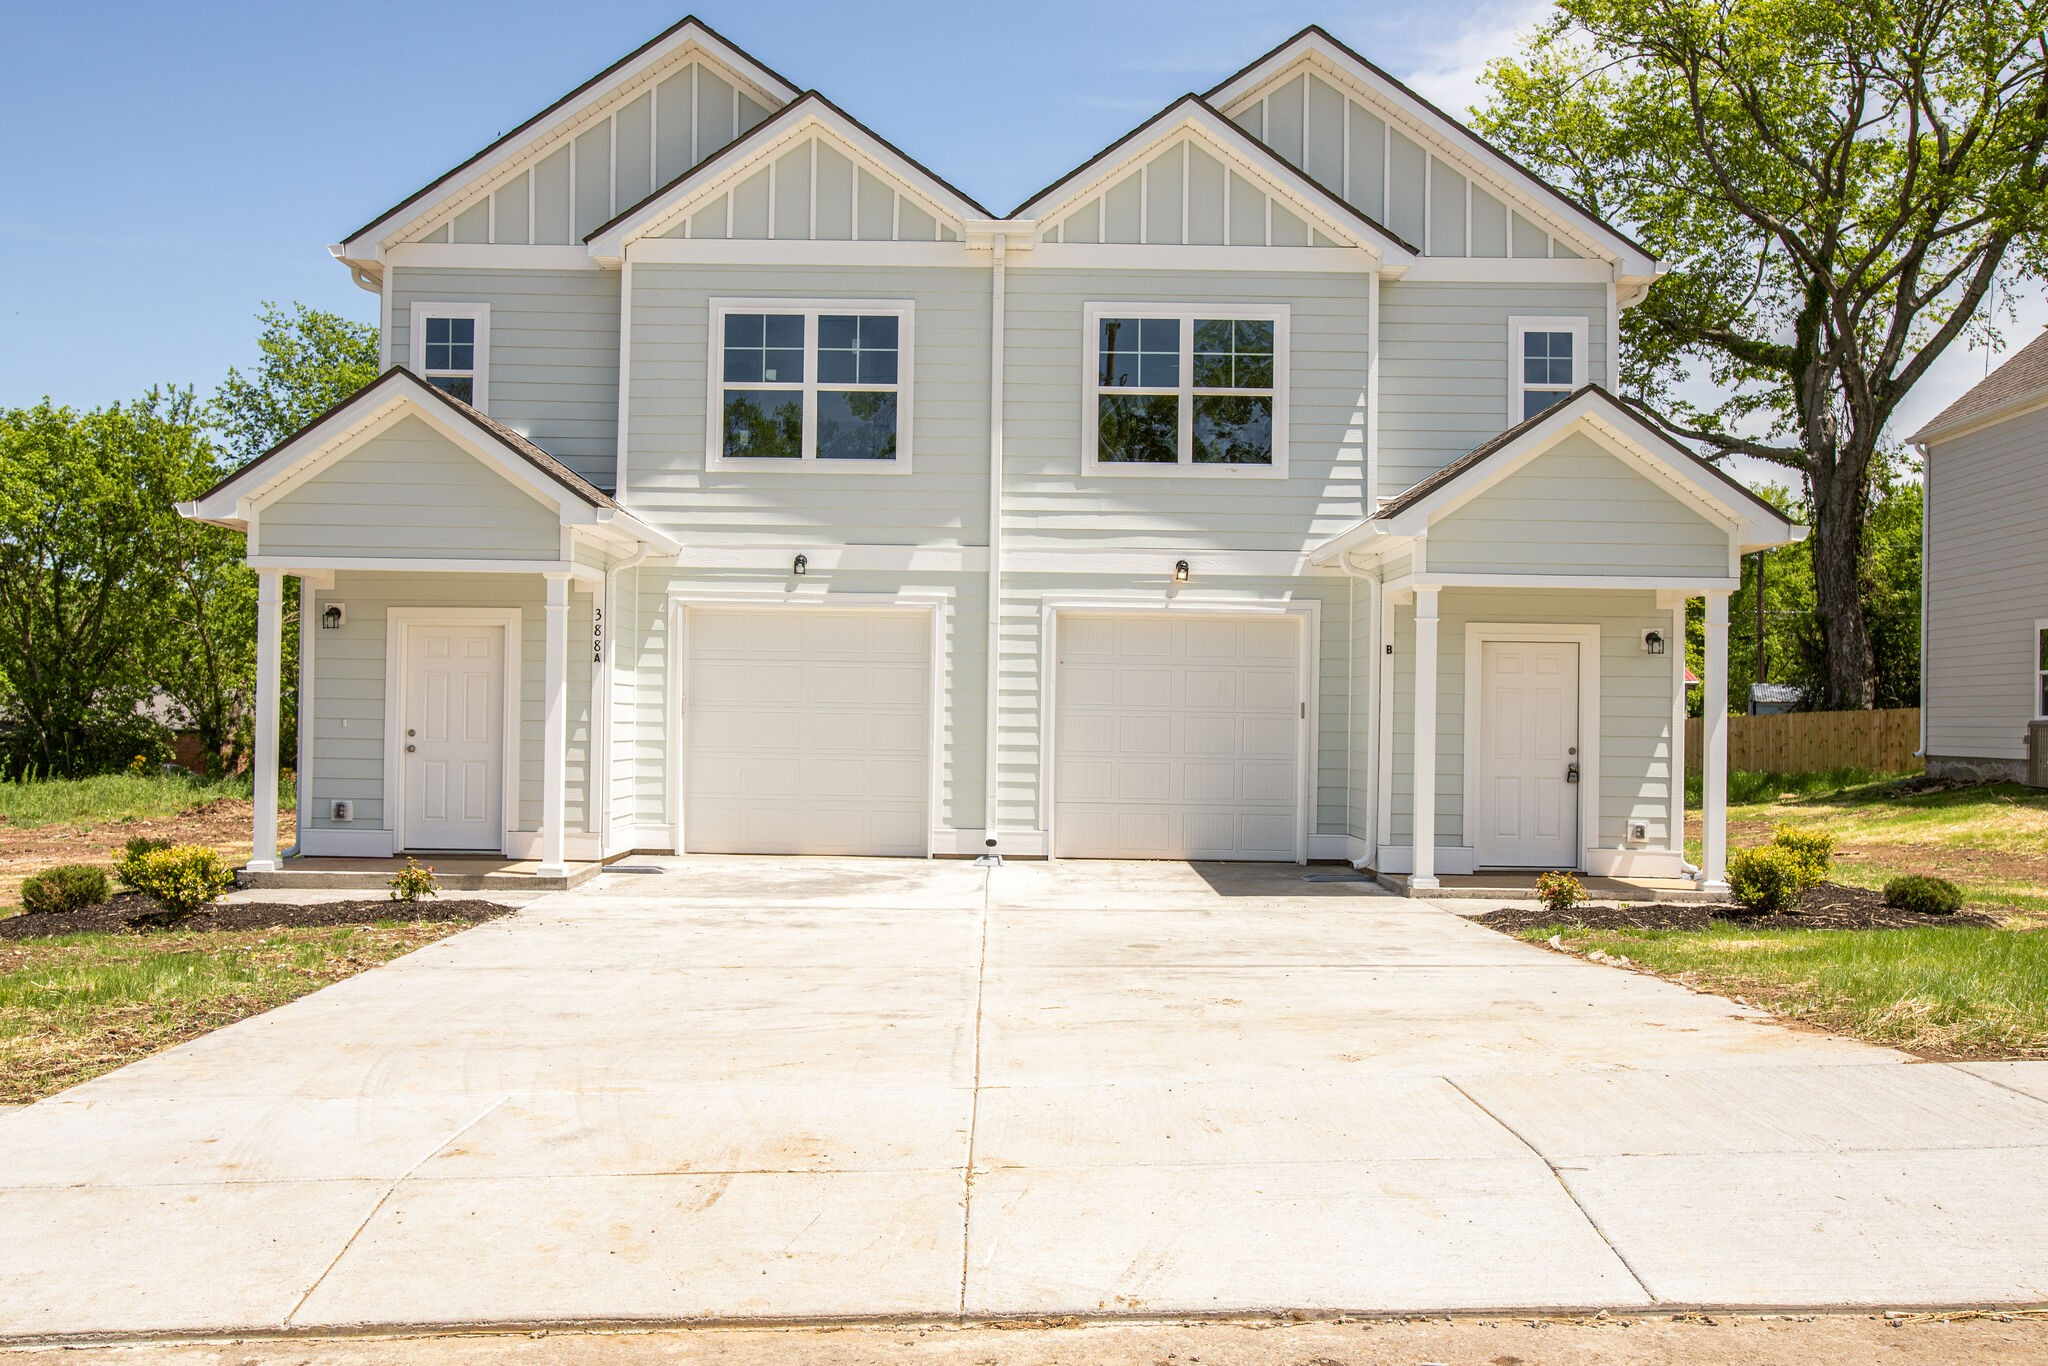 388 Armstrong St #B Property Photo - Columbia, TN real estate listing